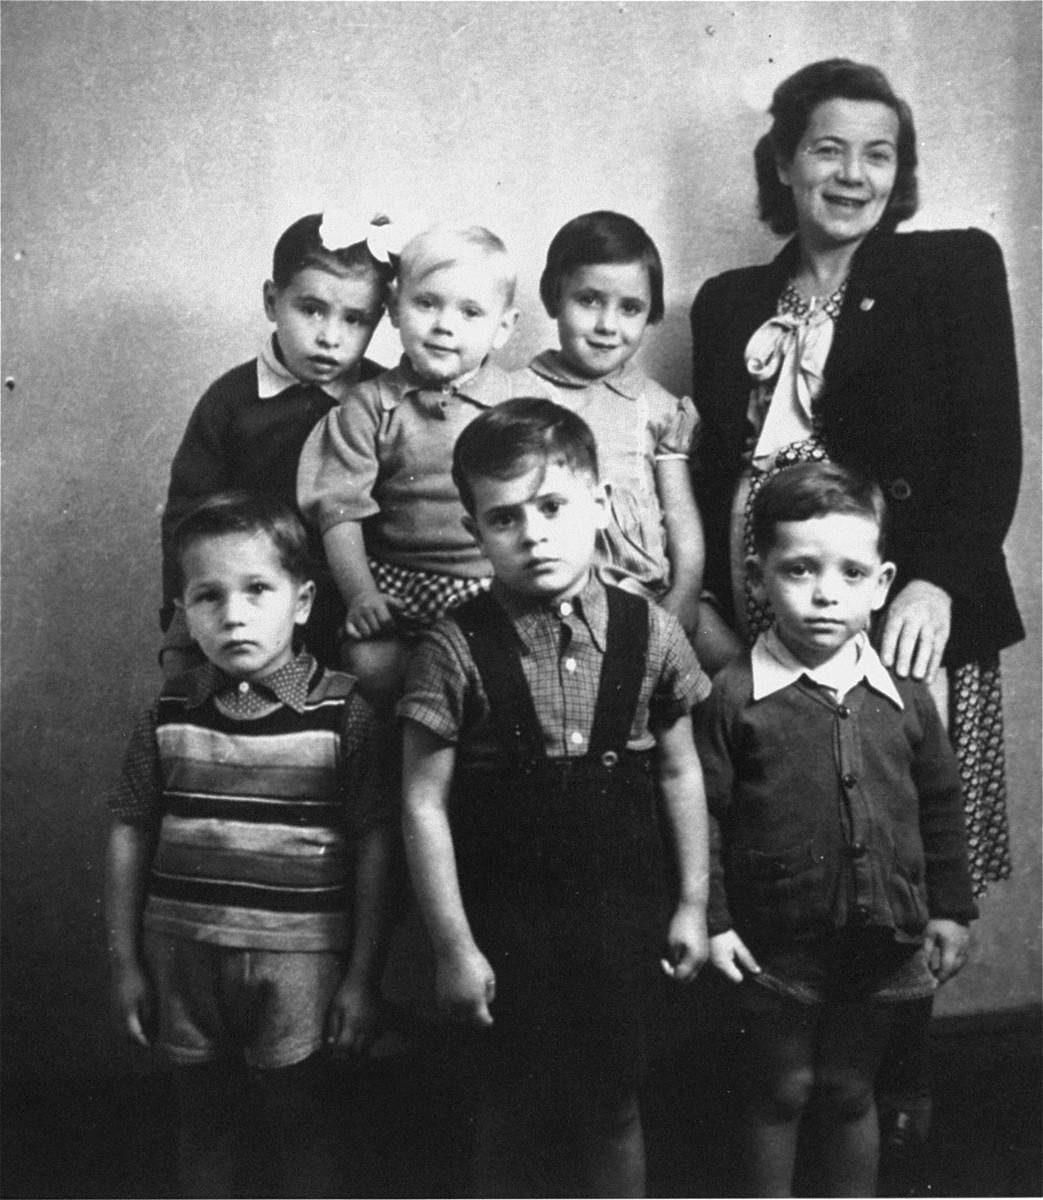 Bina Halperin poses with a group of six Jewish orphans at a children's home in Austria run by the American Joint Distribution Committee. These children were part of a larger group of twenty to thirty orphans who were removed by Bina Halperin from a convent in Poland were they had been hidden during the war.